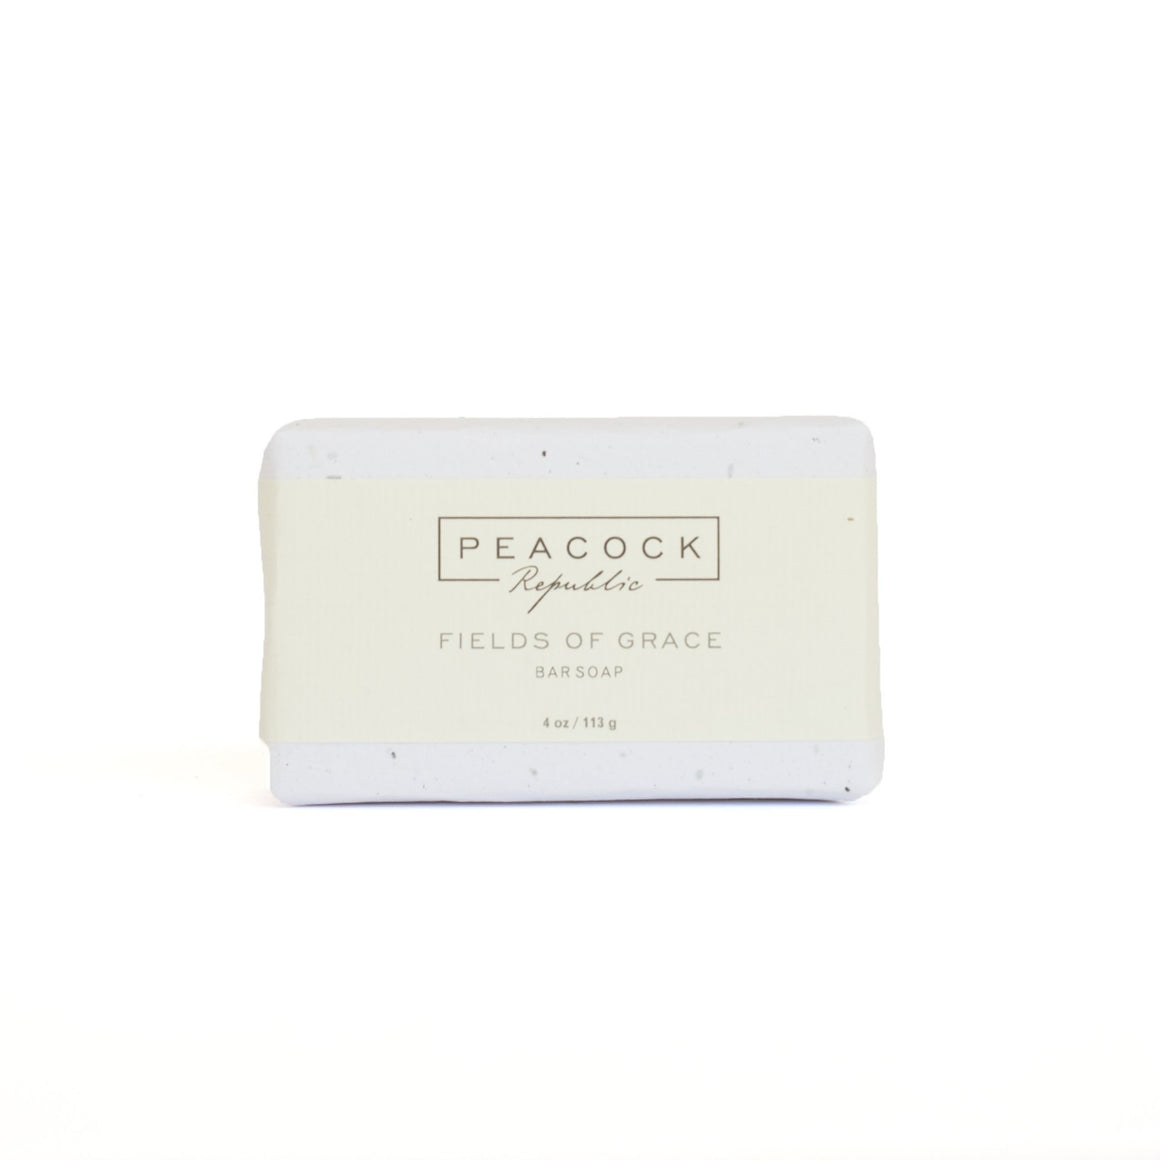 Fields of Grace Face & Body Bar Soap